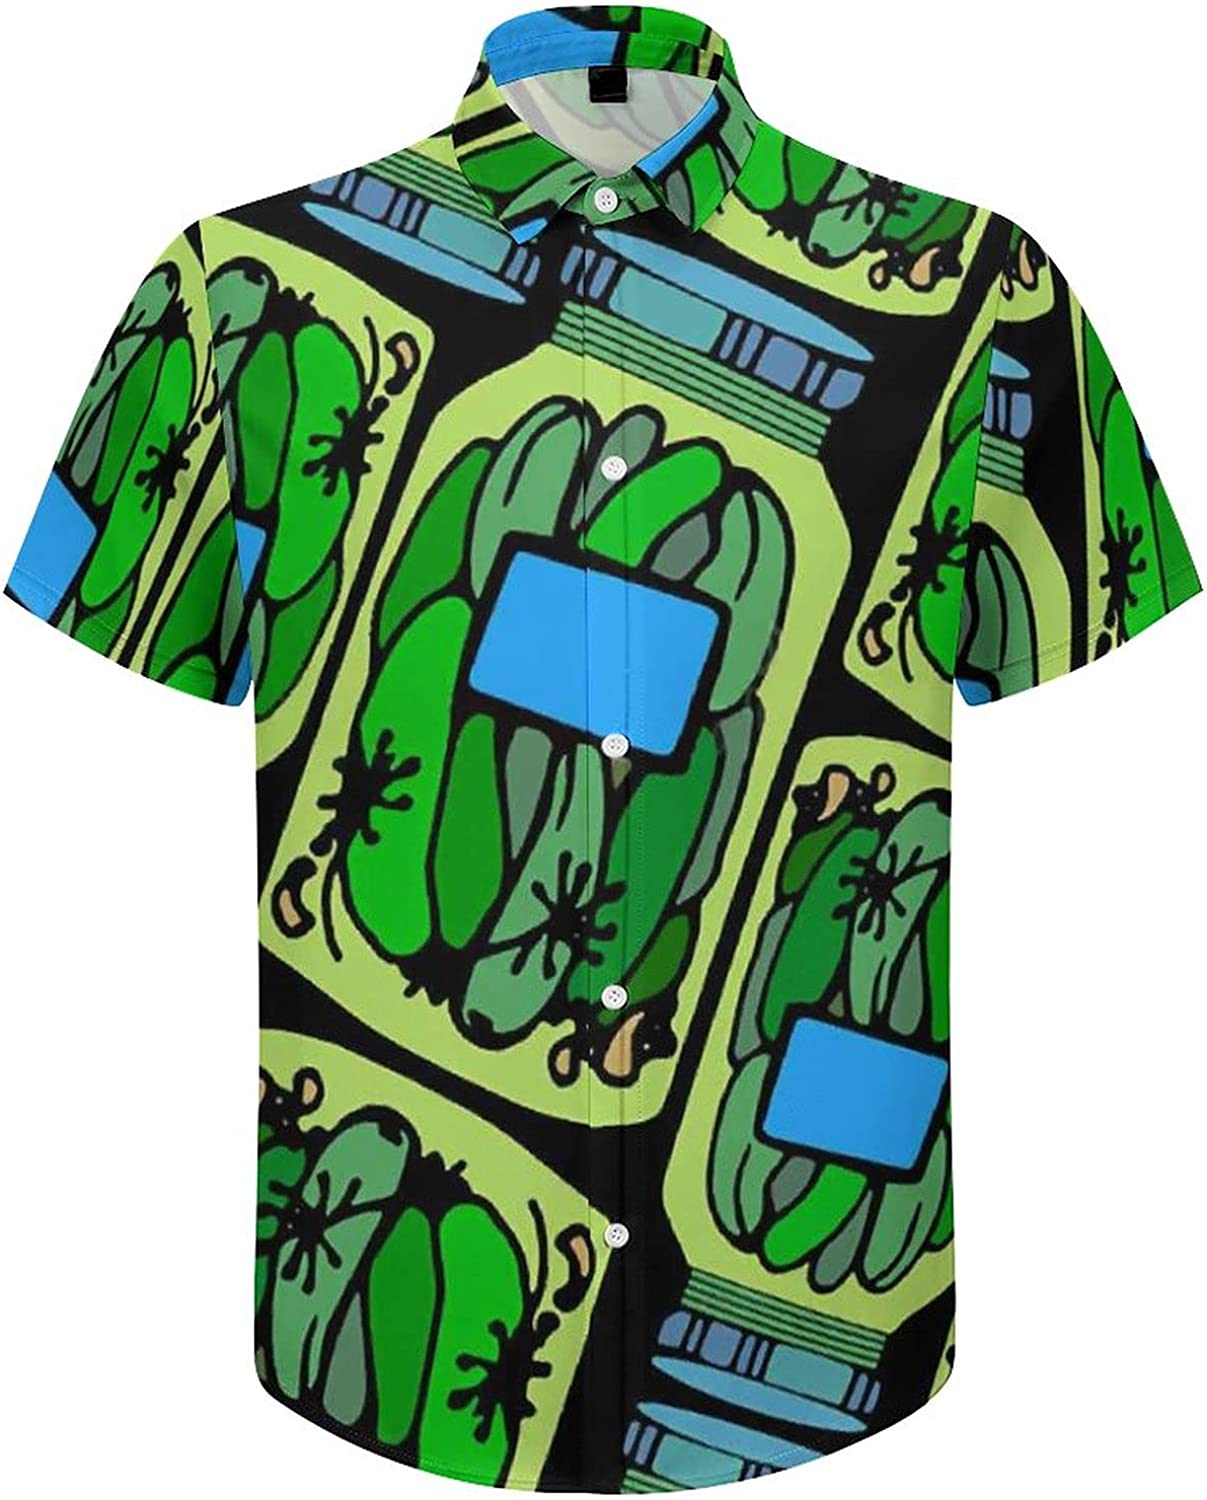 Men's Regular-Fit Short-Sleeve Printed Party Holiday Shirt Healthy Vegetable